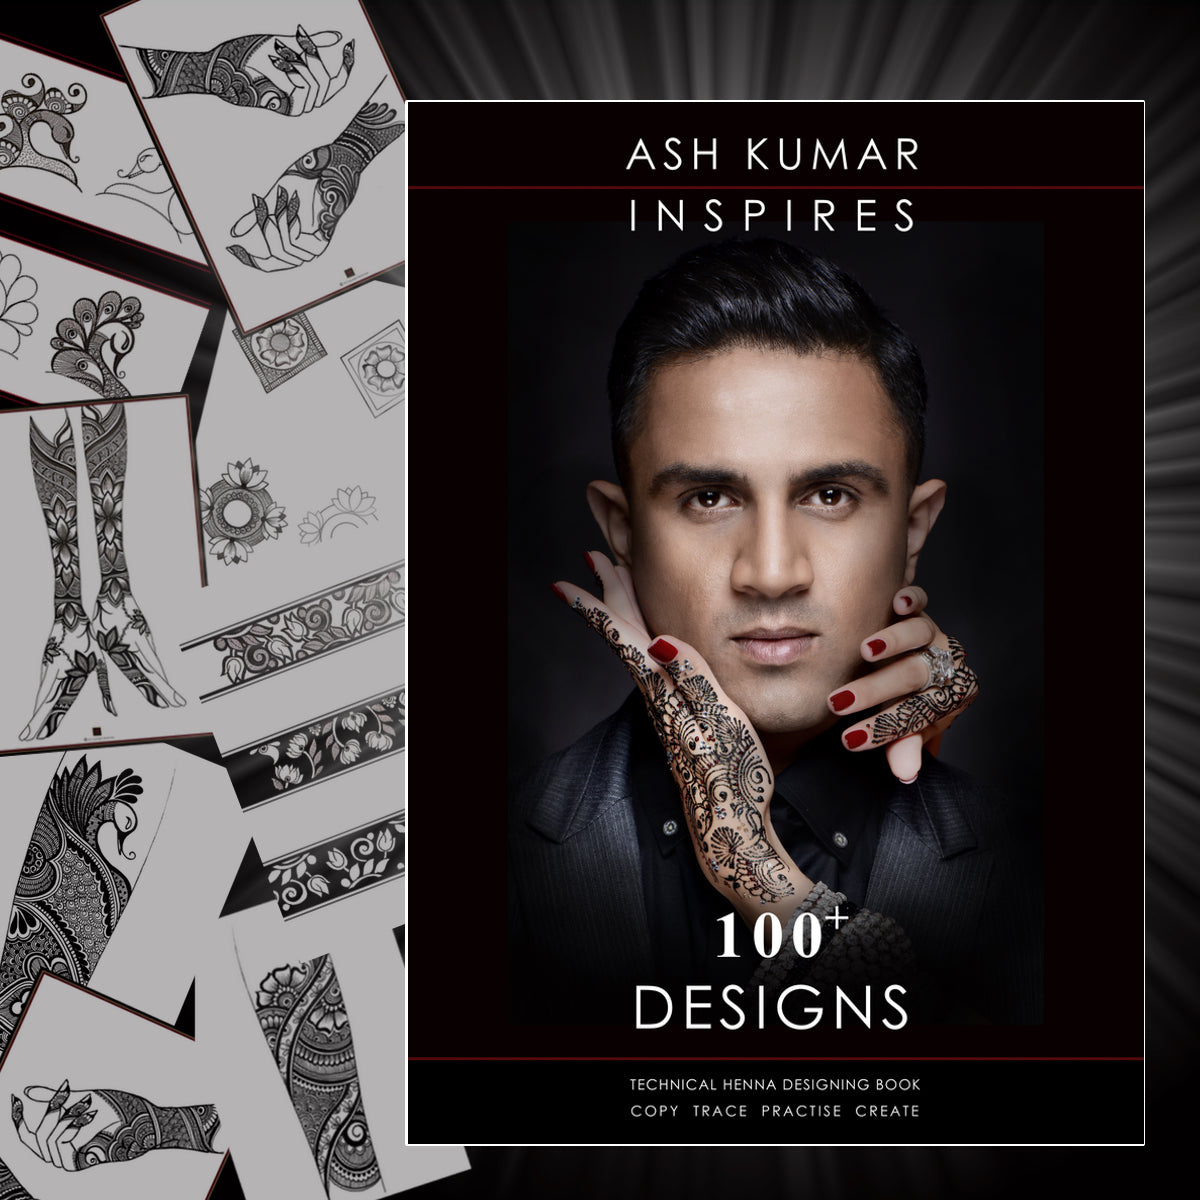 100+ Henna Designs Ash Kumar Inspires Book 2 (Incl Transparent Henna Board)